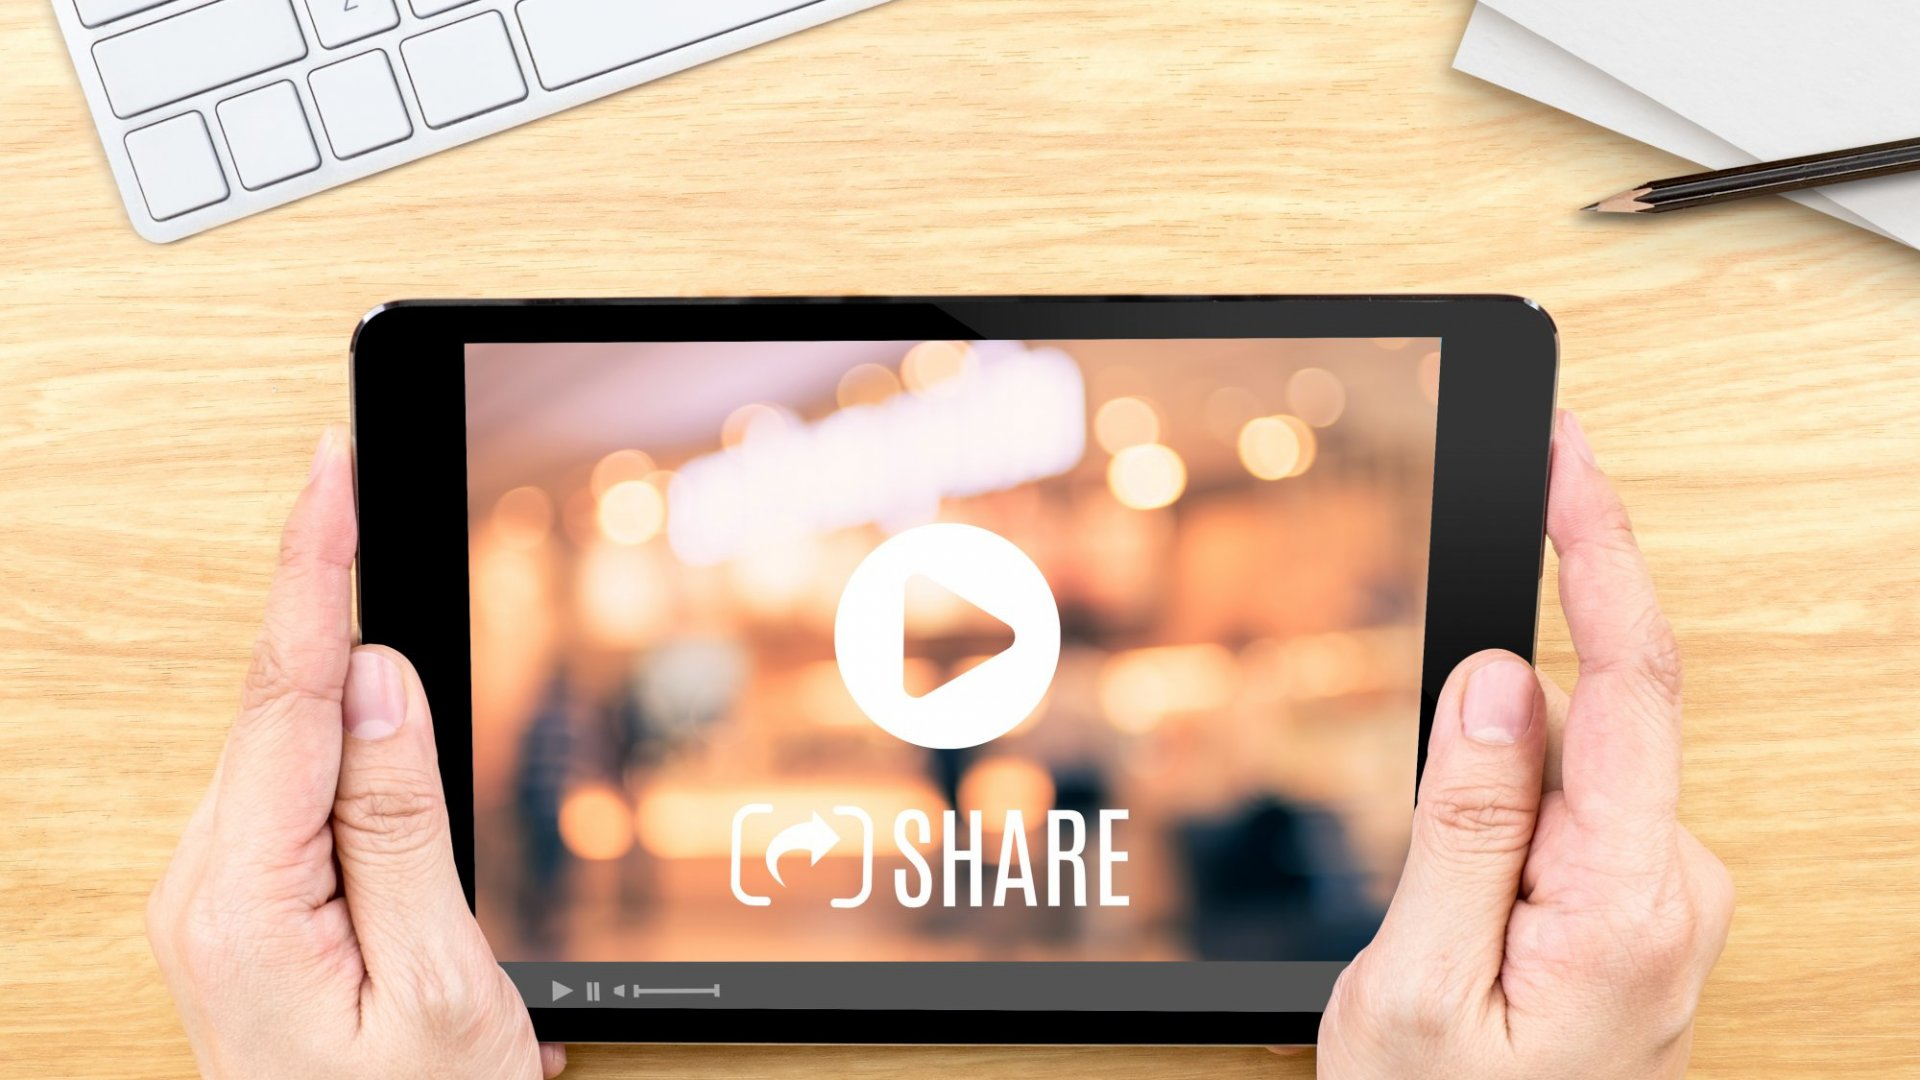 Personalized Video Is Changing Marketing and Sales Strategy. Here Are 3 Ways to Capitalize